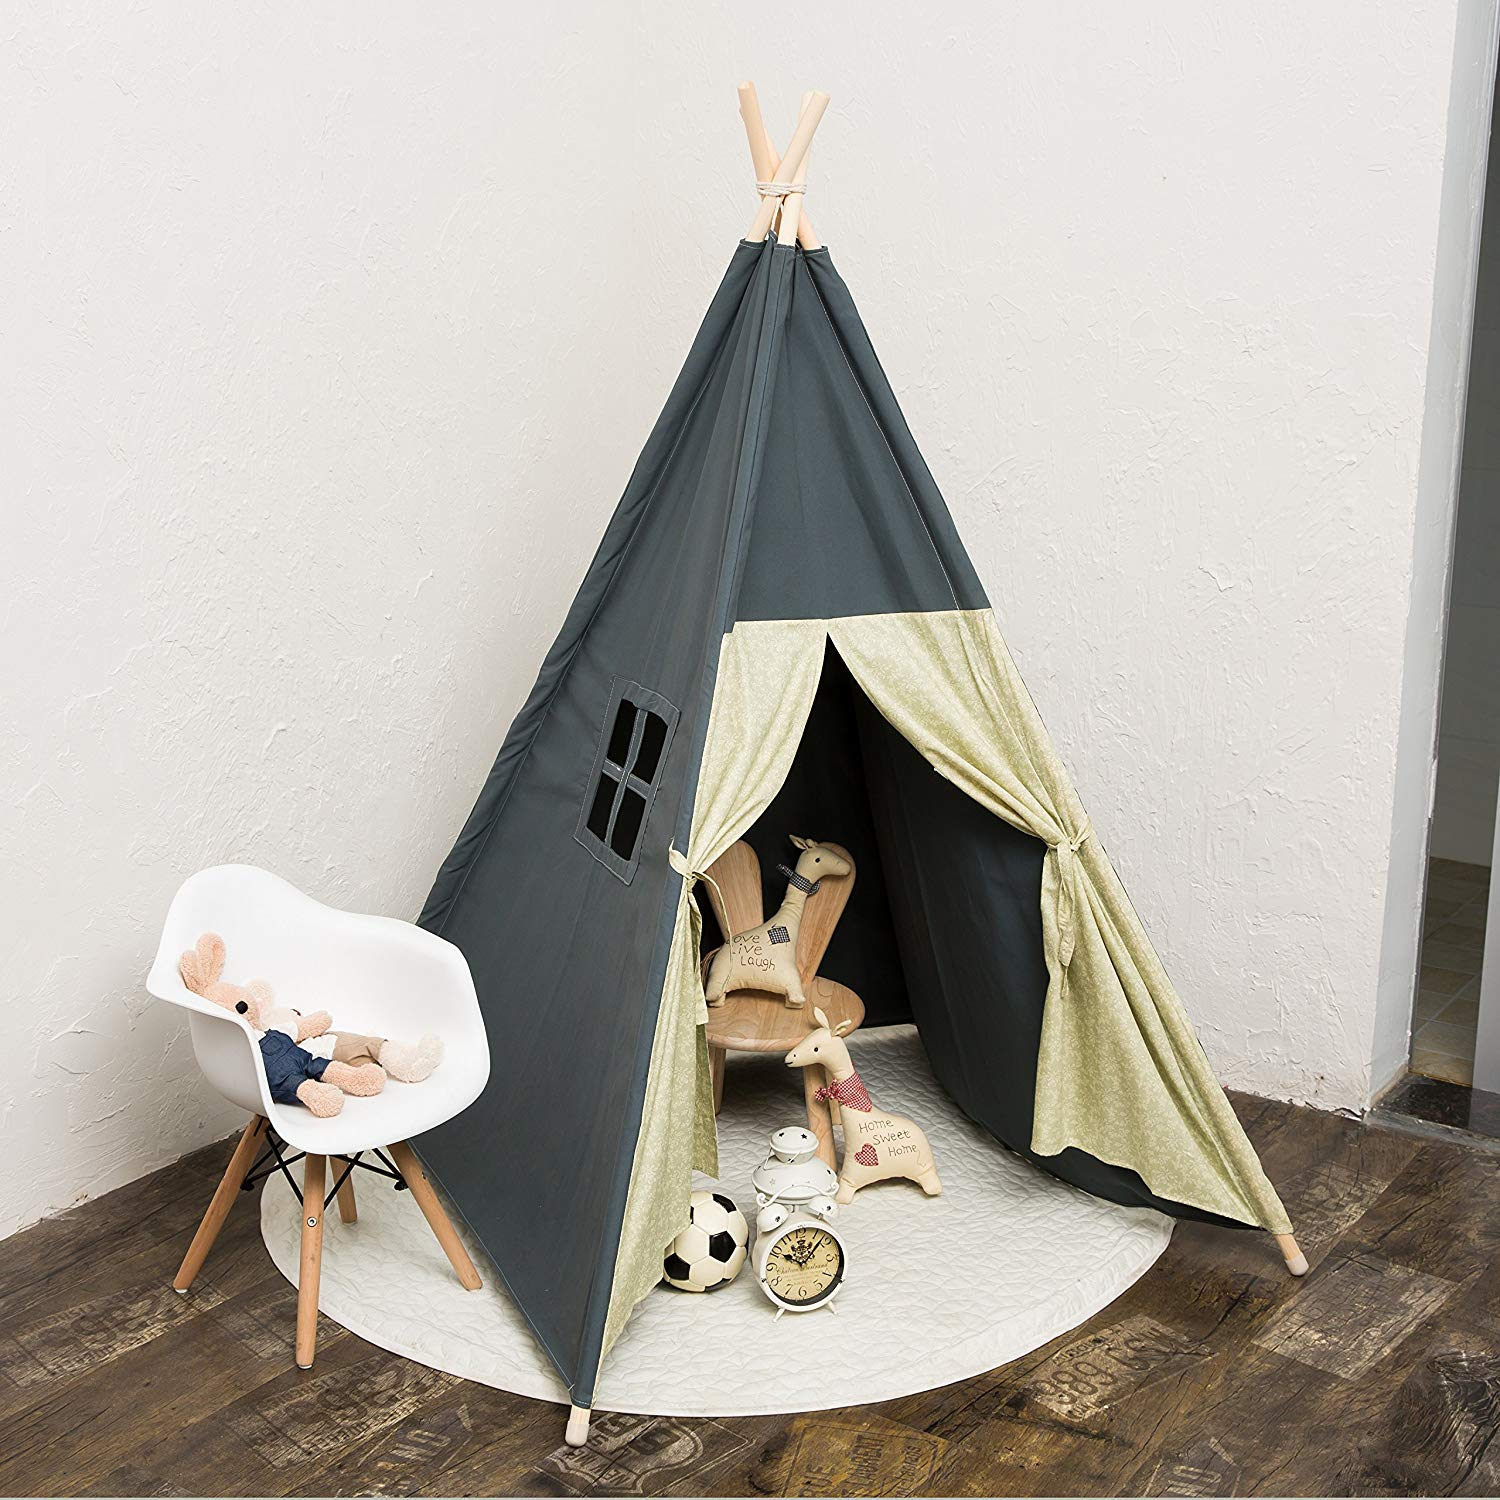 RONGFA new Family safe children play tents,With a window,The curtain has a strap fixed